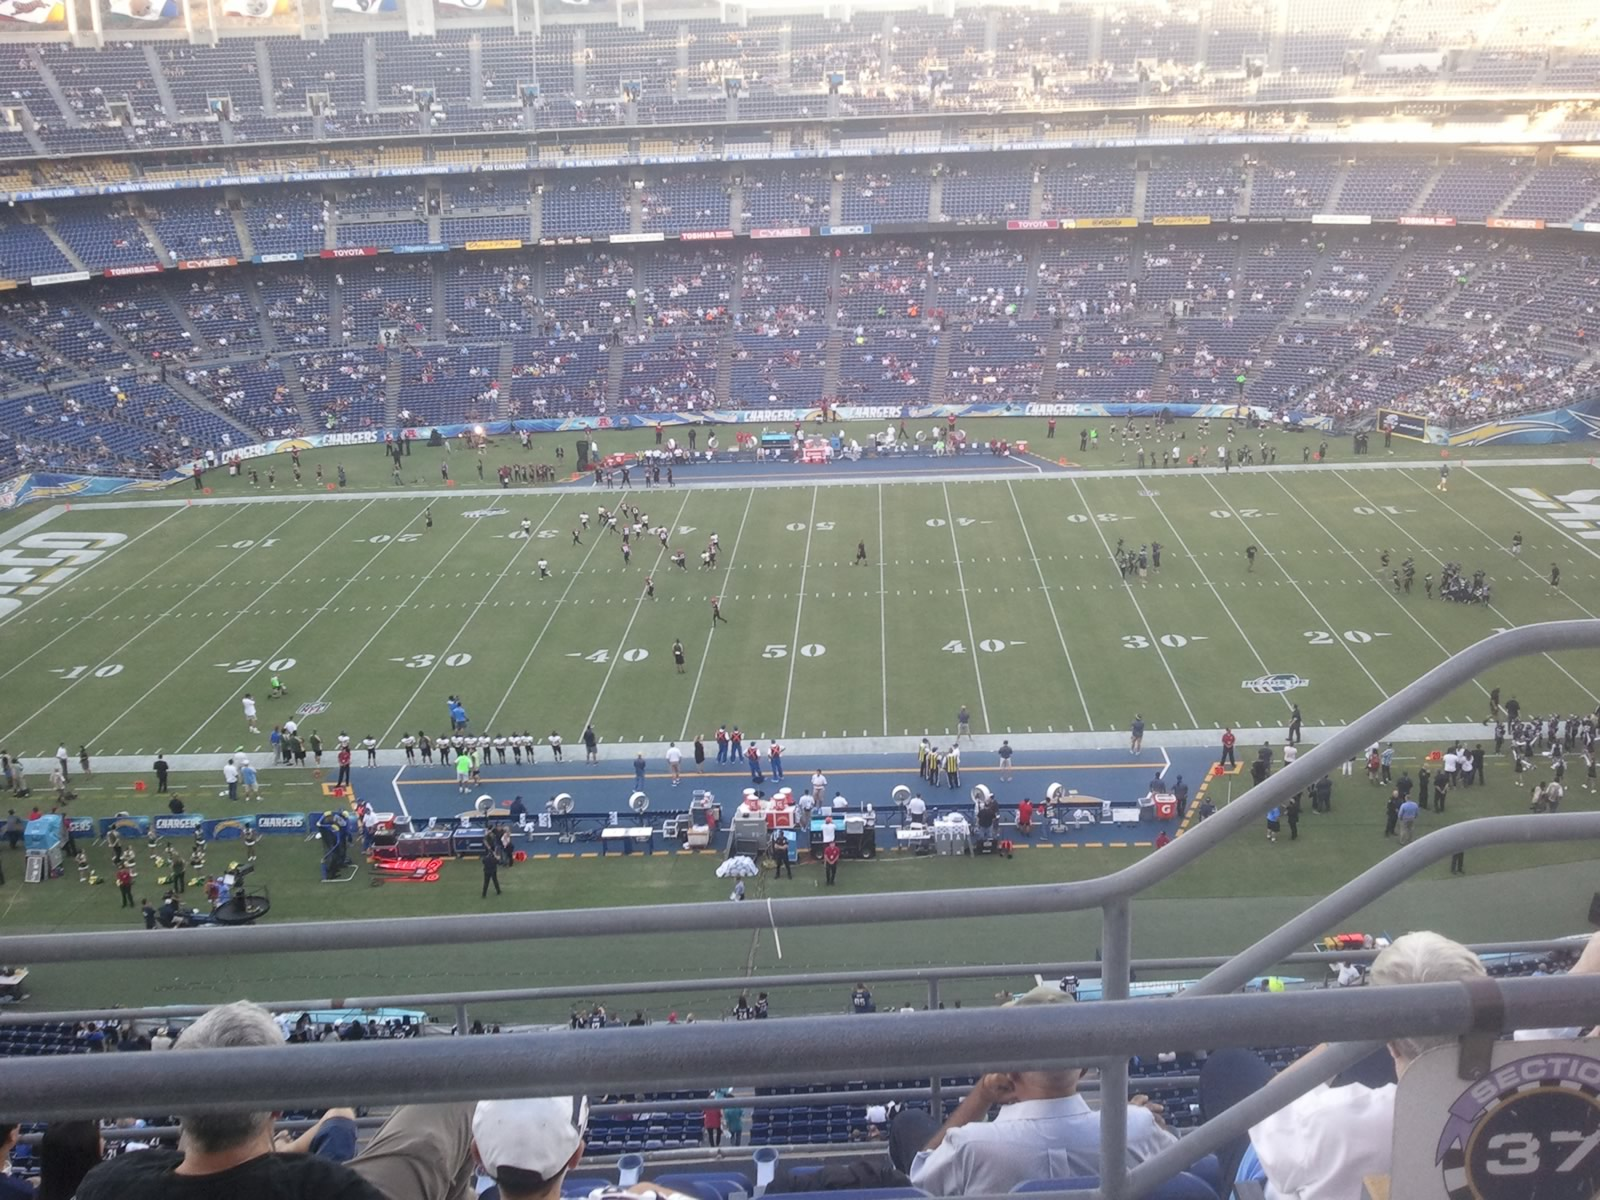 View Level 37V, Row 6